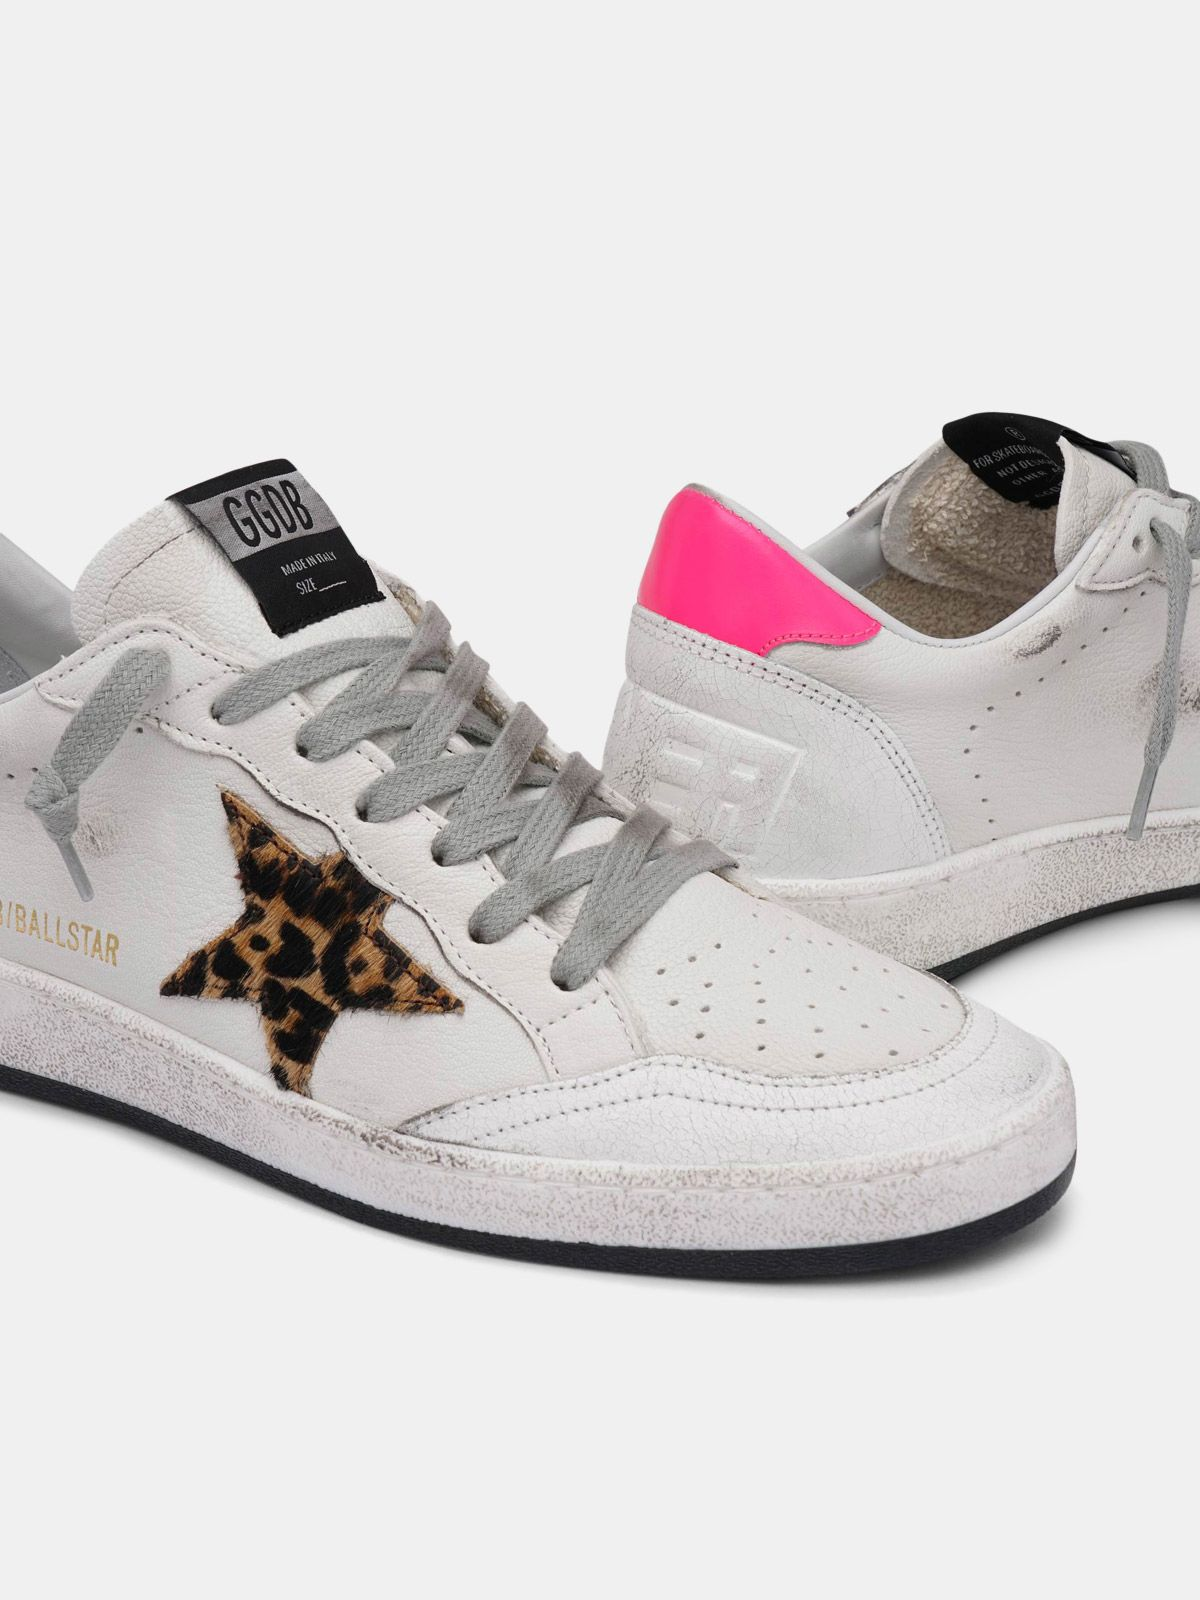 Golden Goose - Sneakers Ball Star bianche in pelle con stella leopardata in